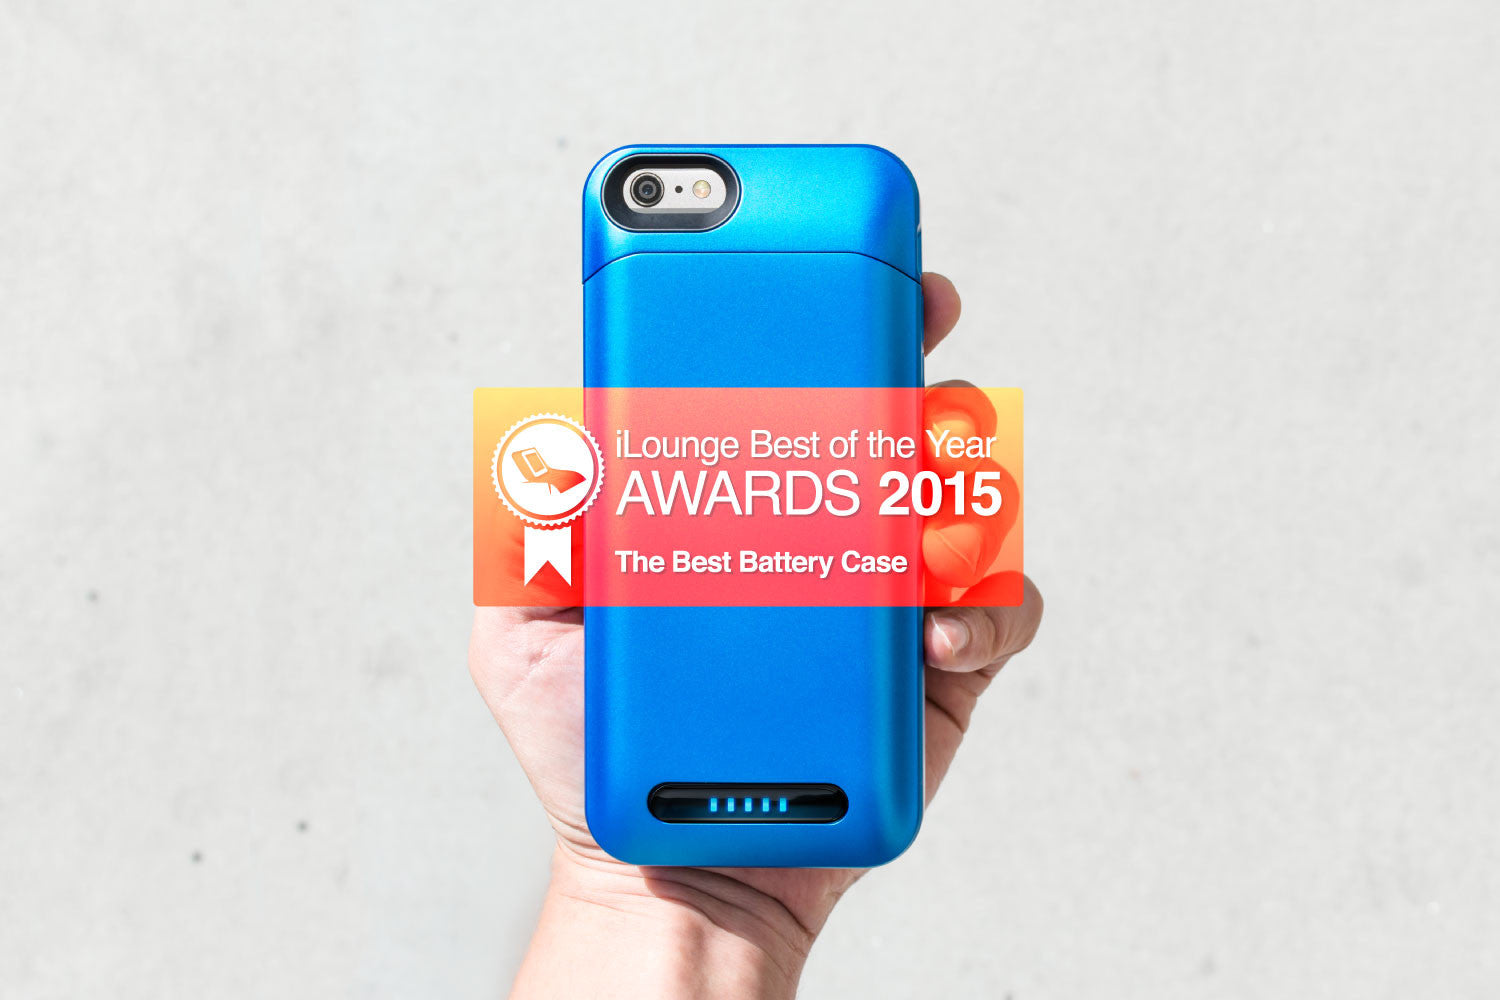 The PhoneSuit Battery Case Won Best of Year Award